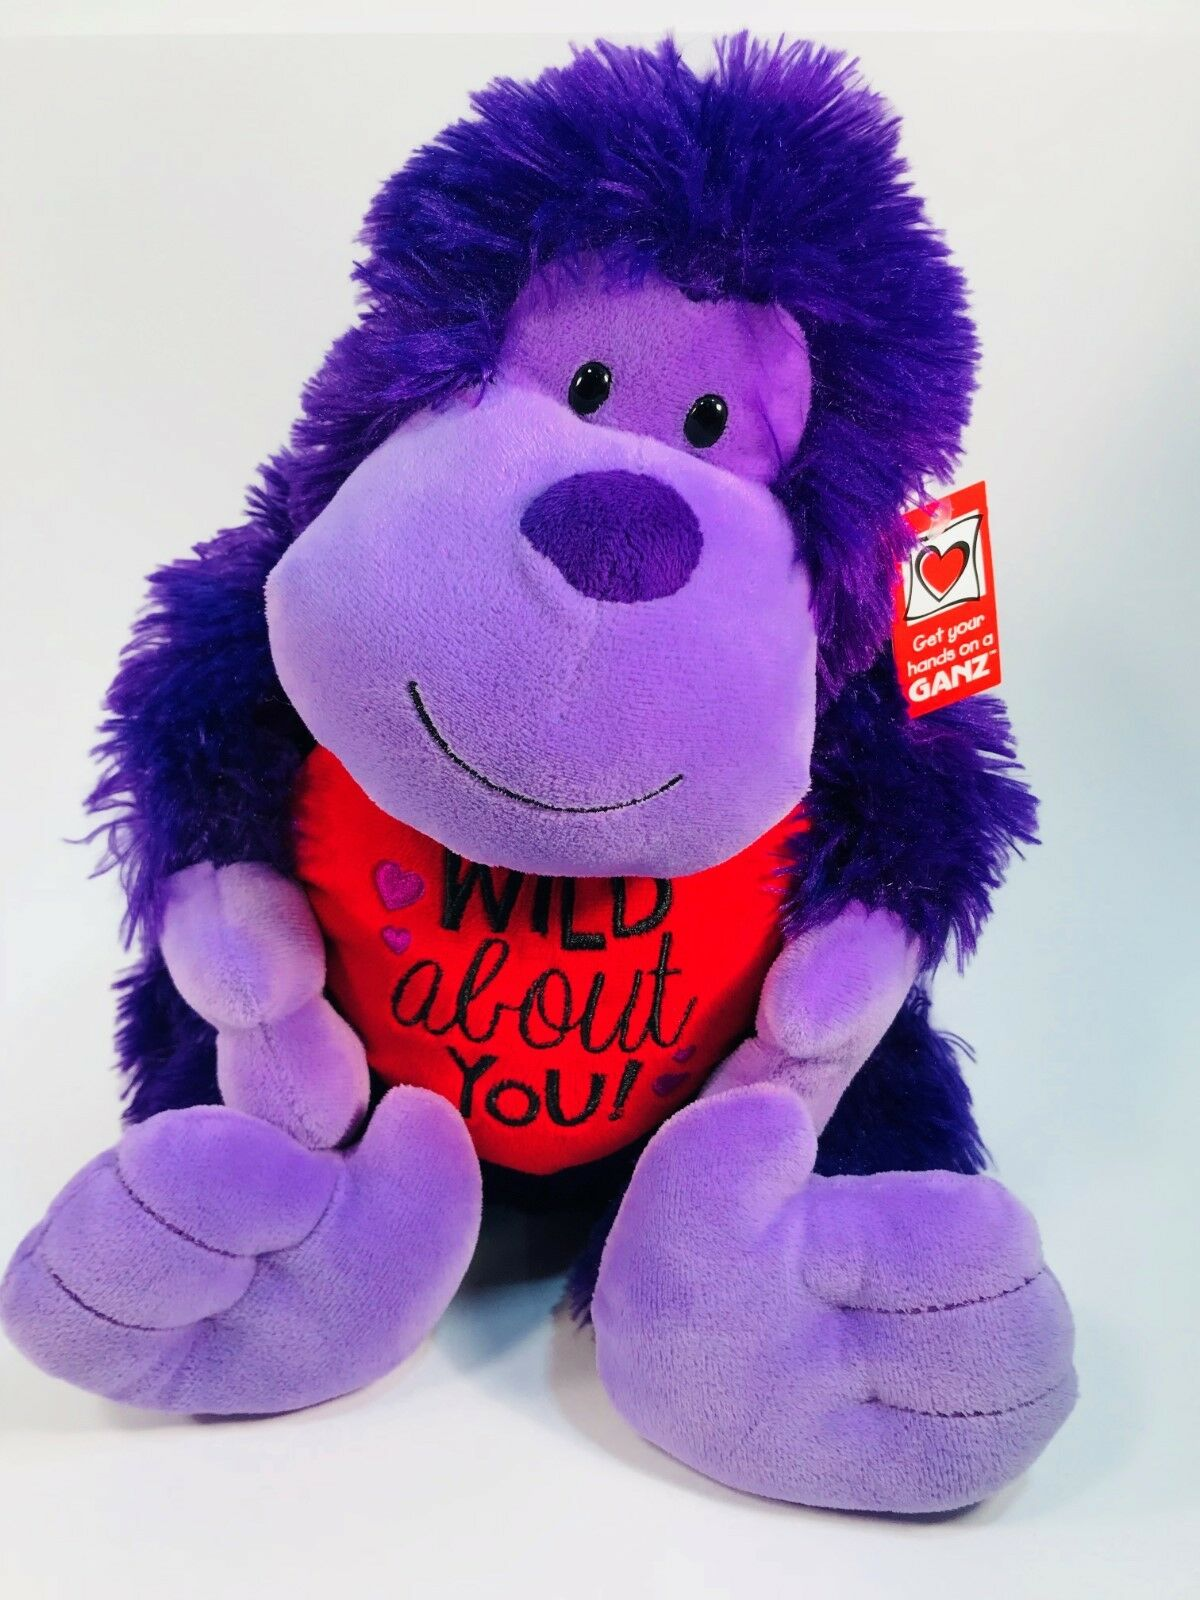 Purple Plush Valentine Monkey  Wild About You  Red Heart Shaped Pillow NWT 13